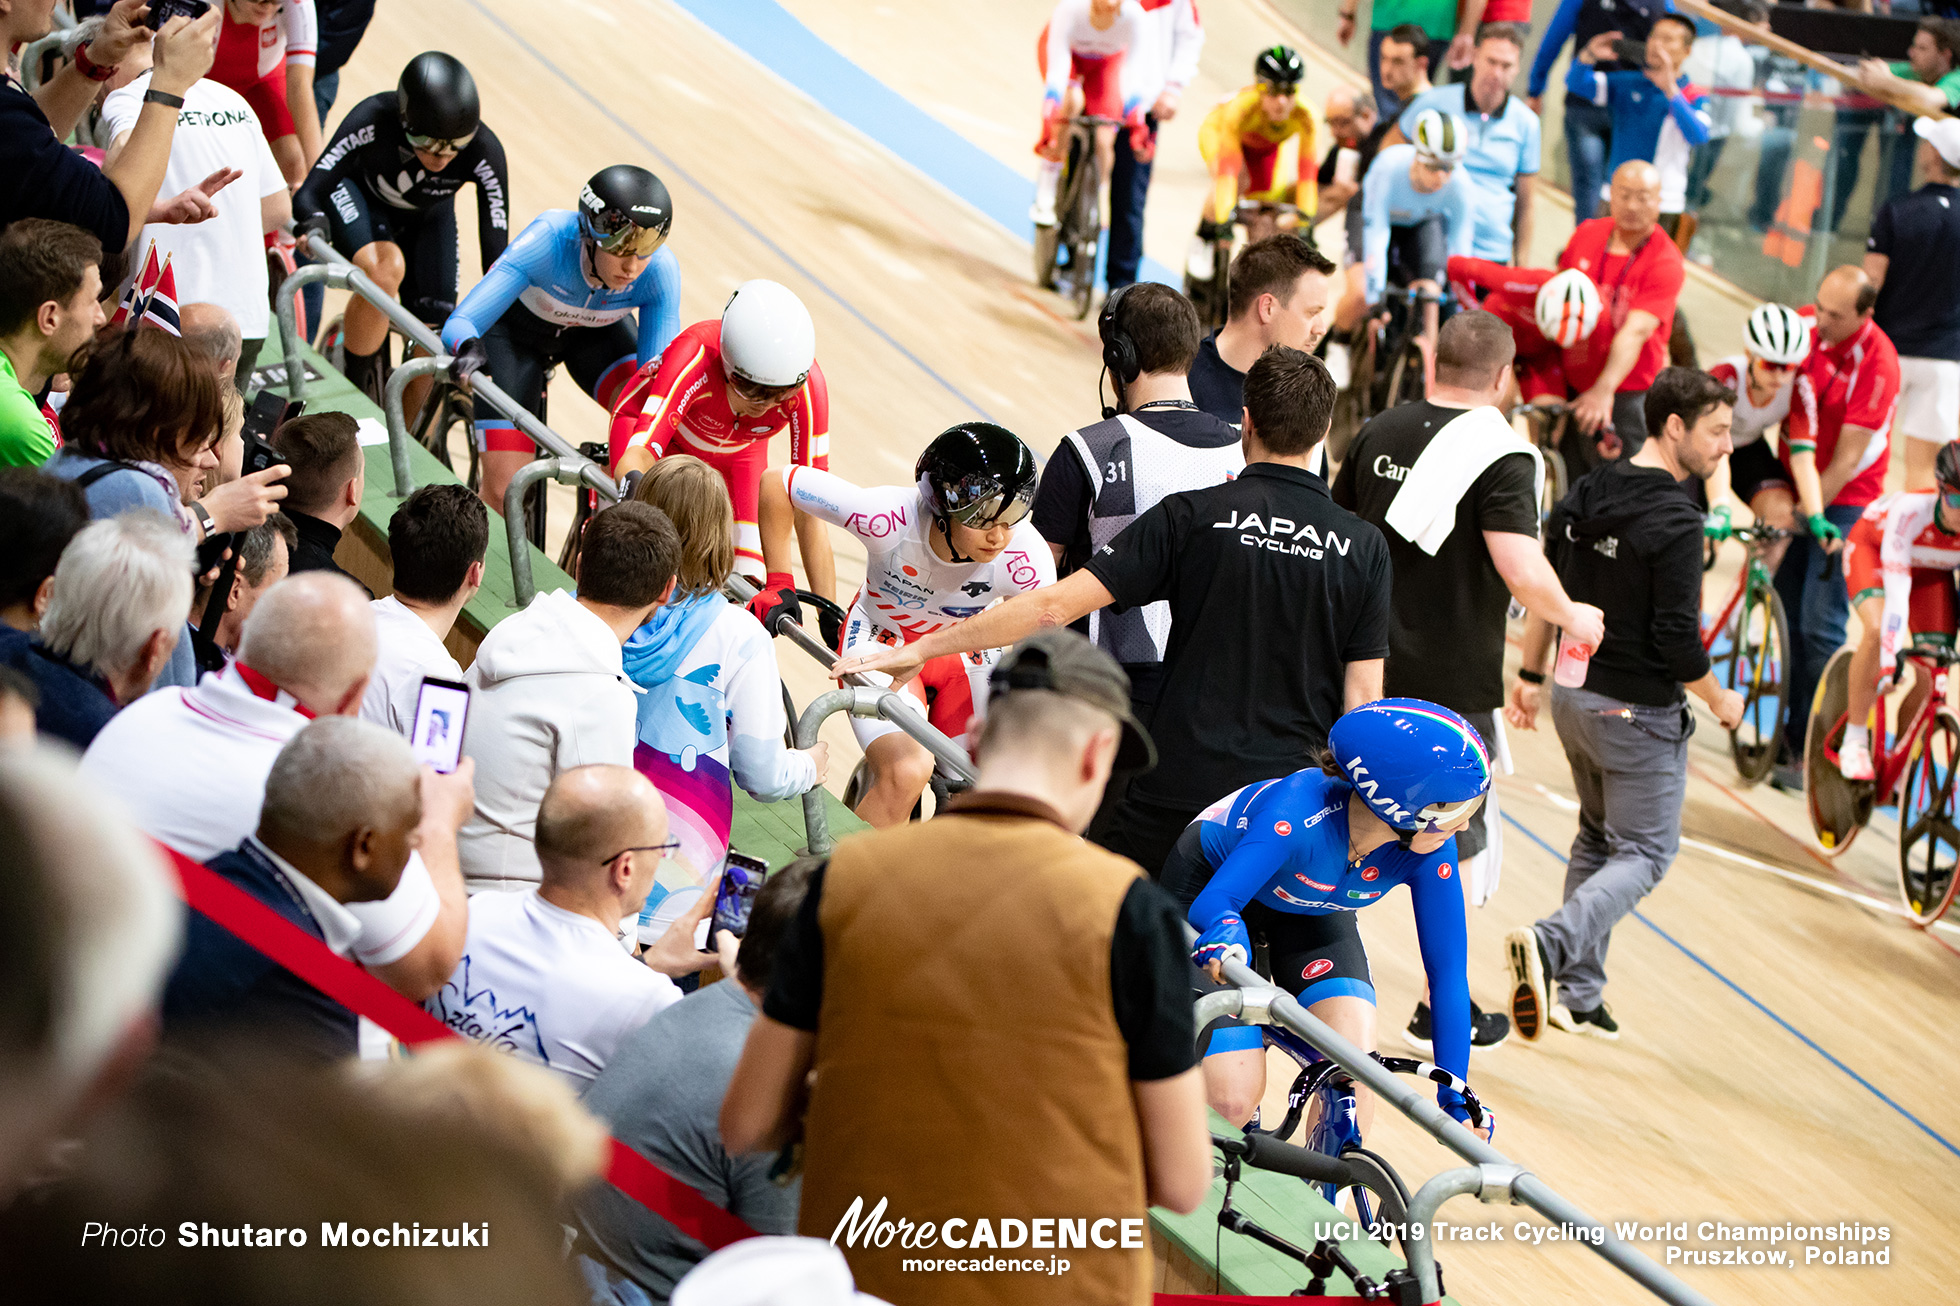 Women's Omnium Point Race / 2019 Track Cycling World Championships Pruszków, Poland